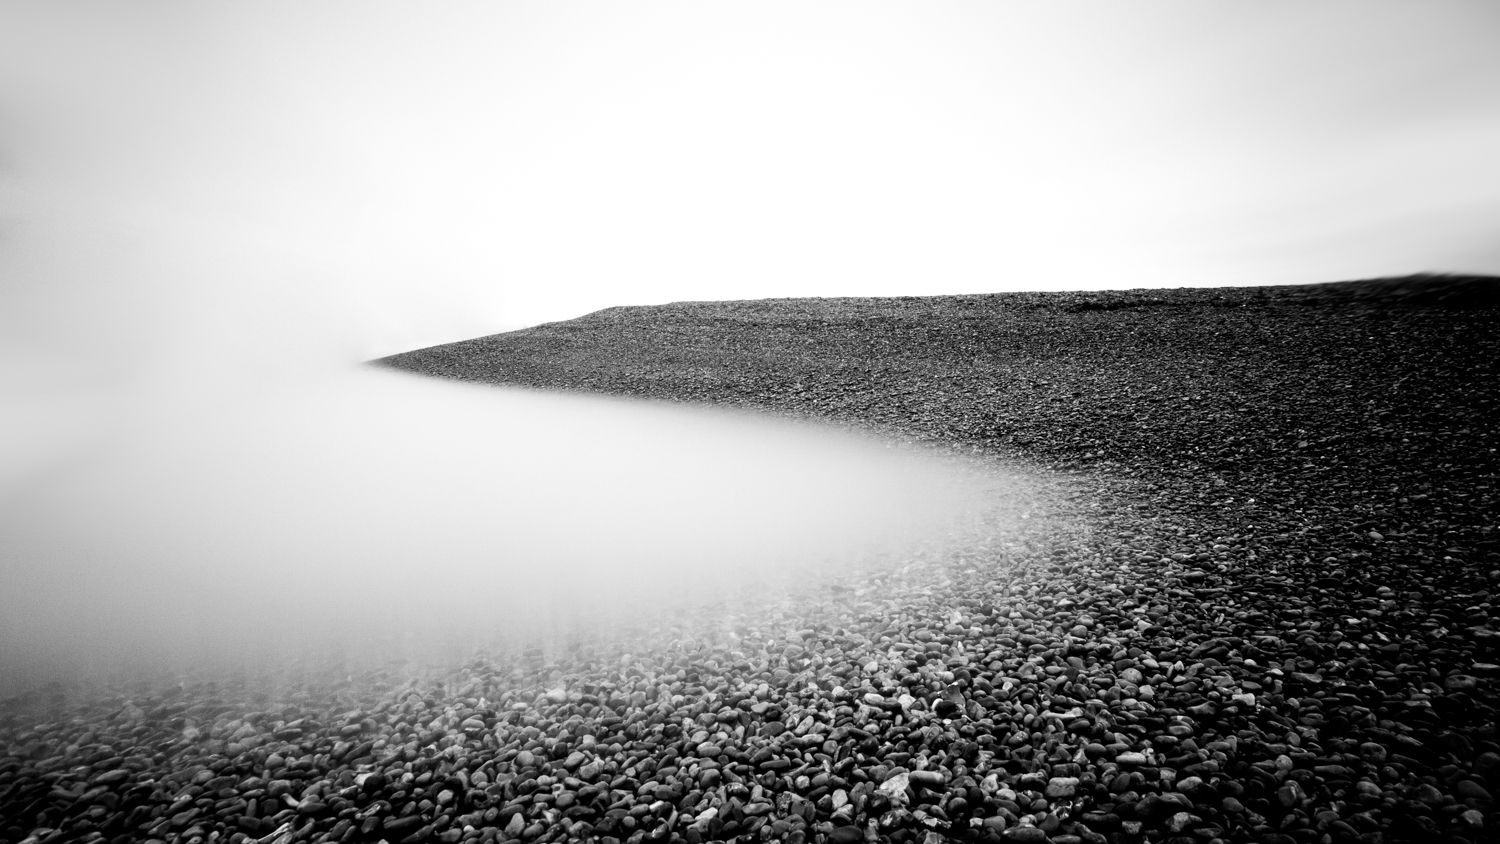 Meliorate, Shingle Street